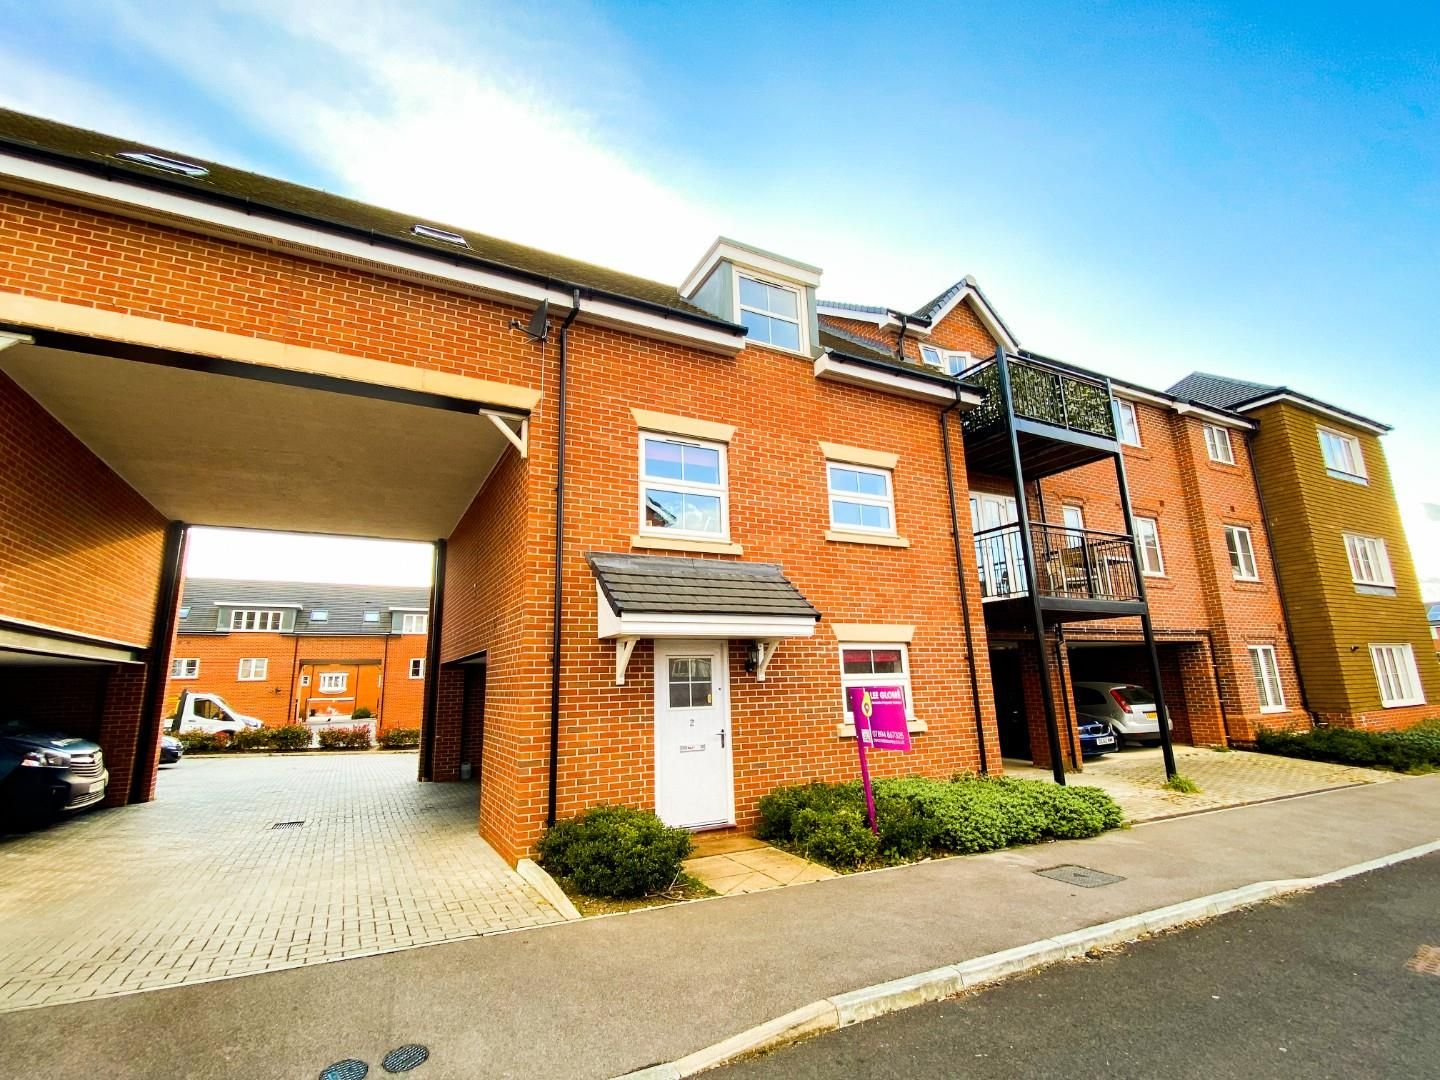 3 bed house for sale in Church Crookham, GU52